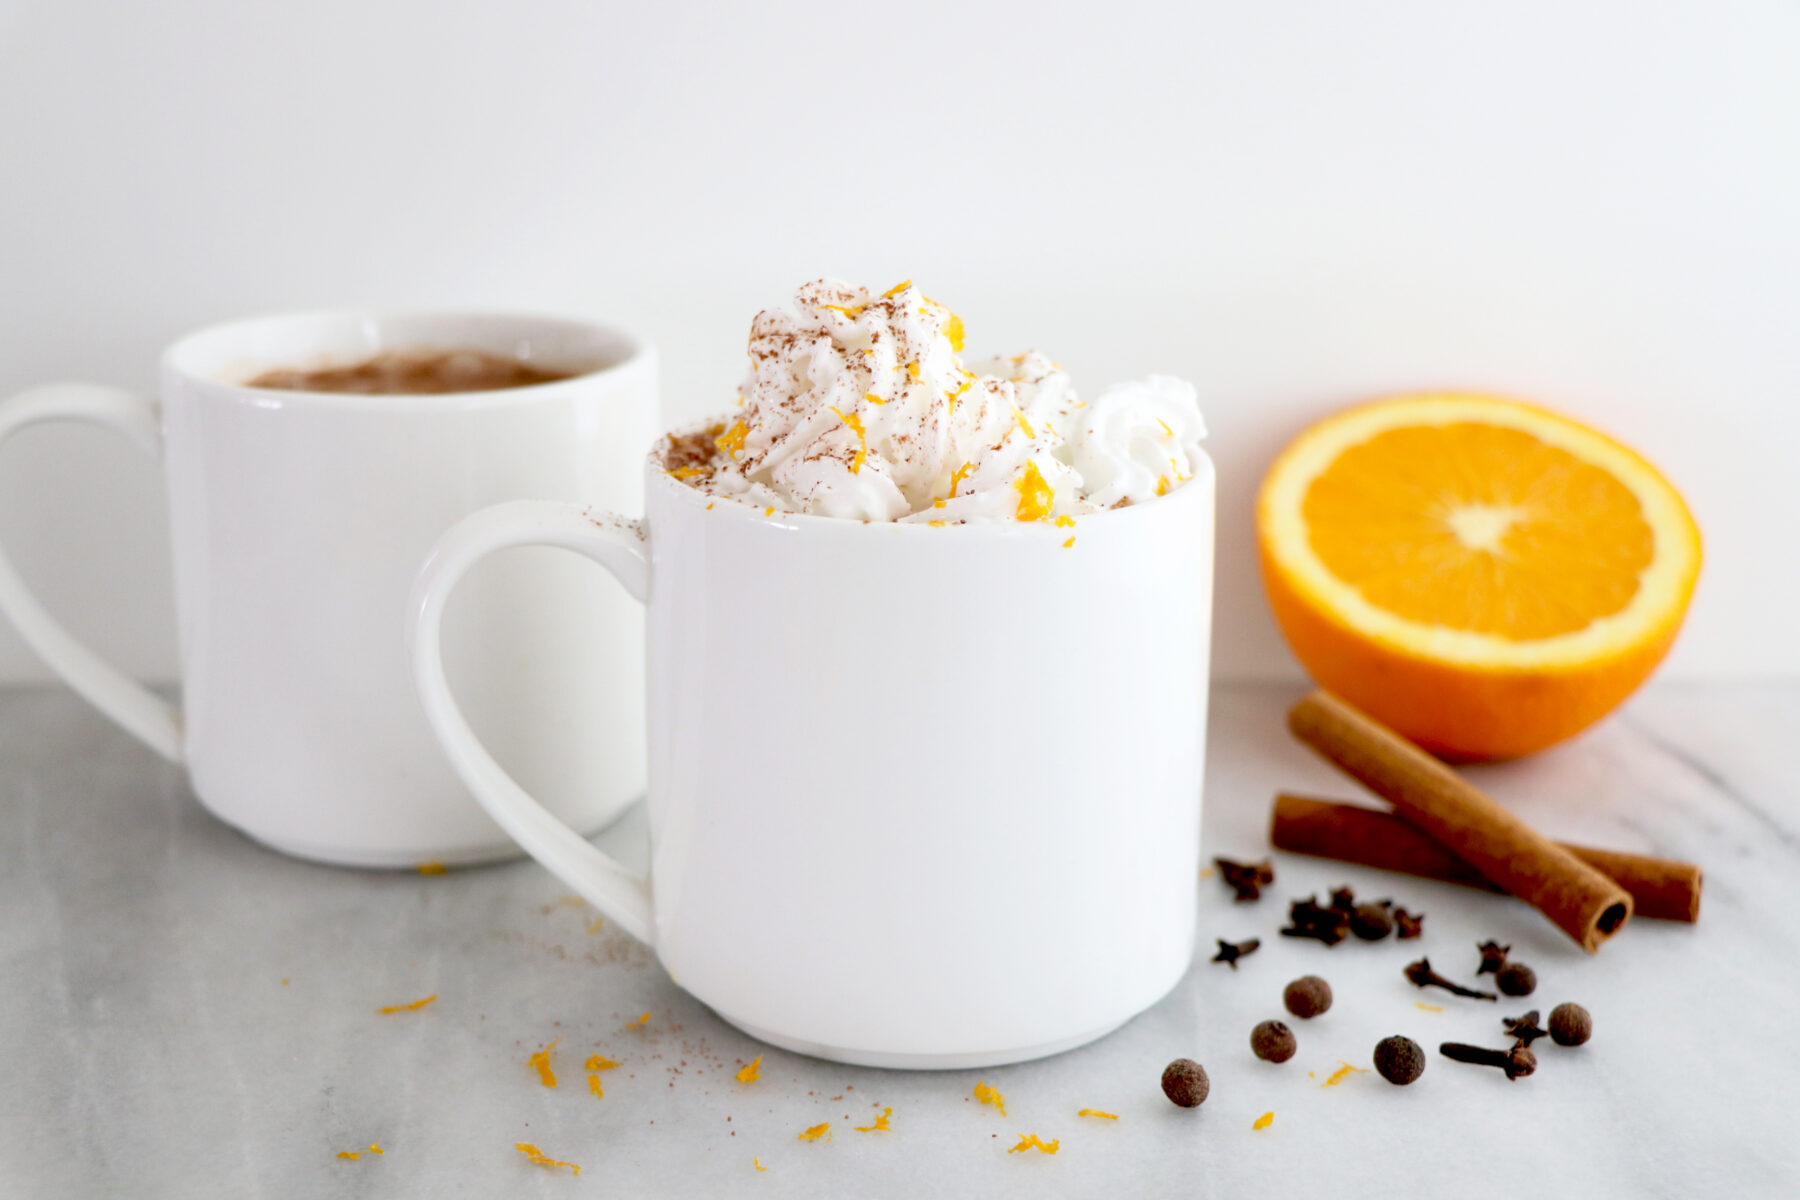 White mug with orange spiced hot coco topped with whipped cream. Surrounded by orange slice and spices.